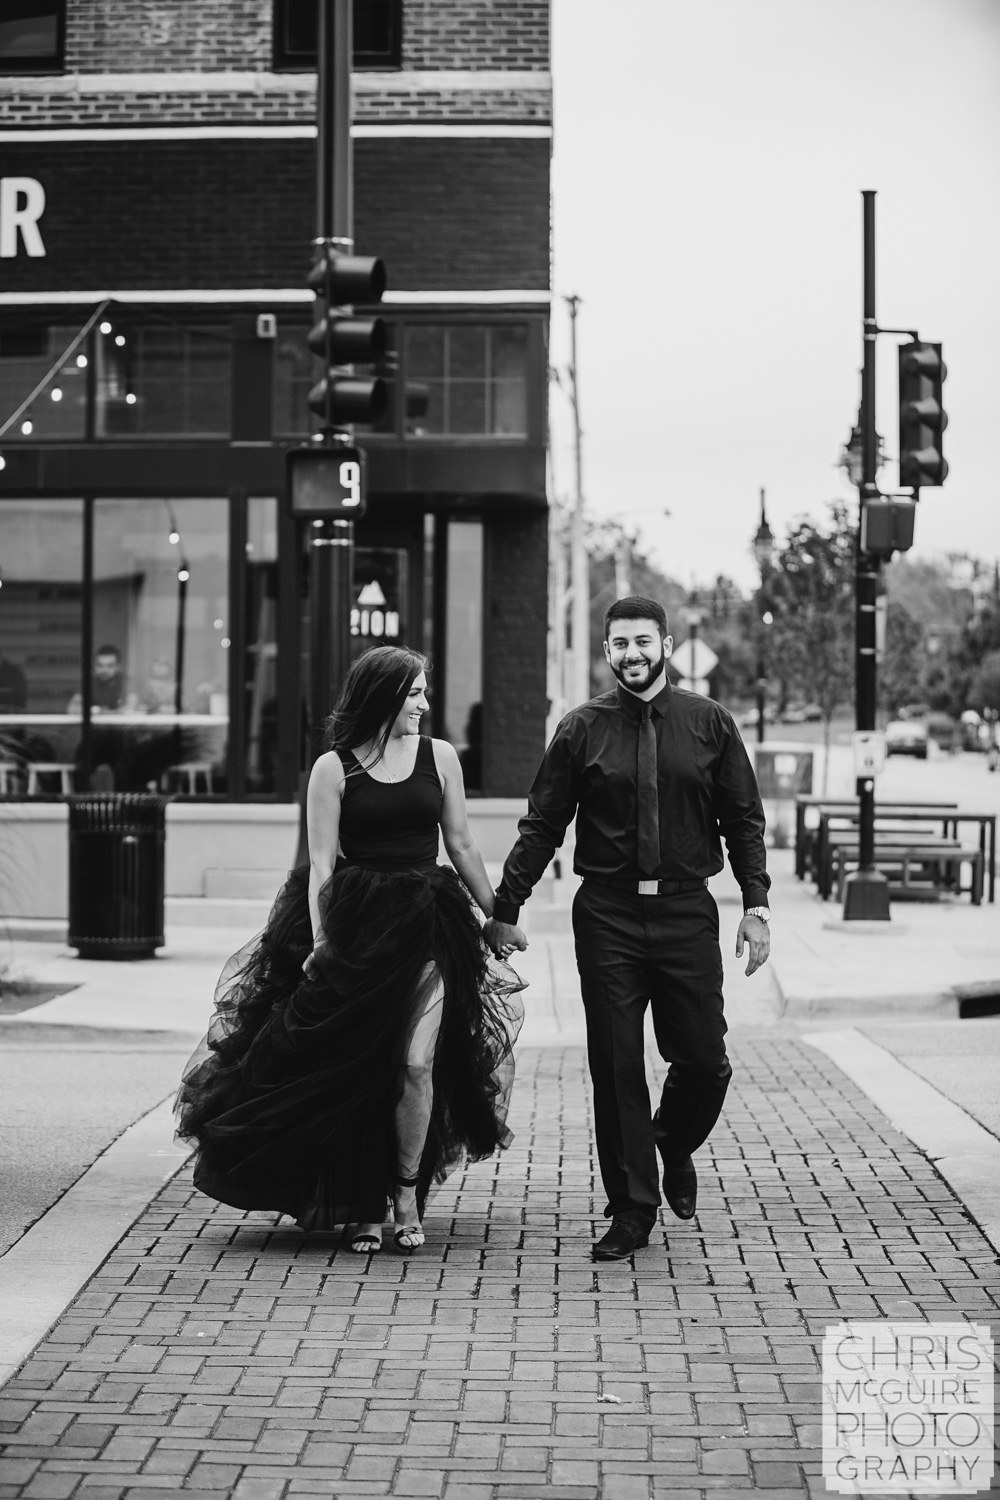 Engagement Portrait at Zion Coffee in Peoria, black tule dress